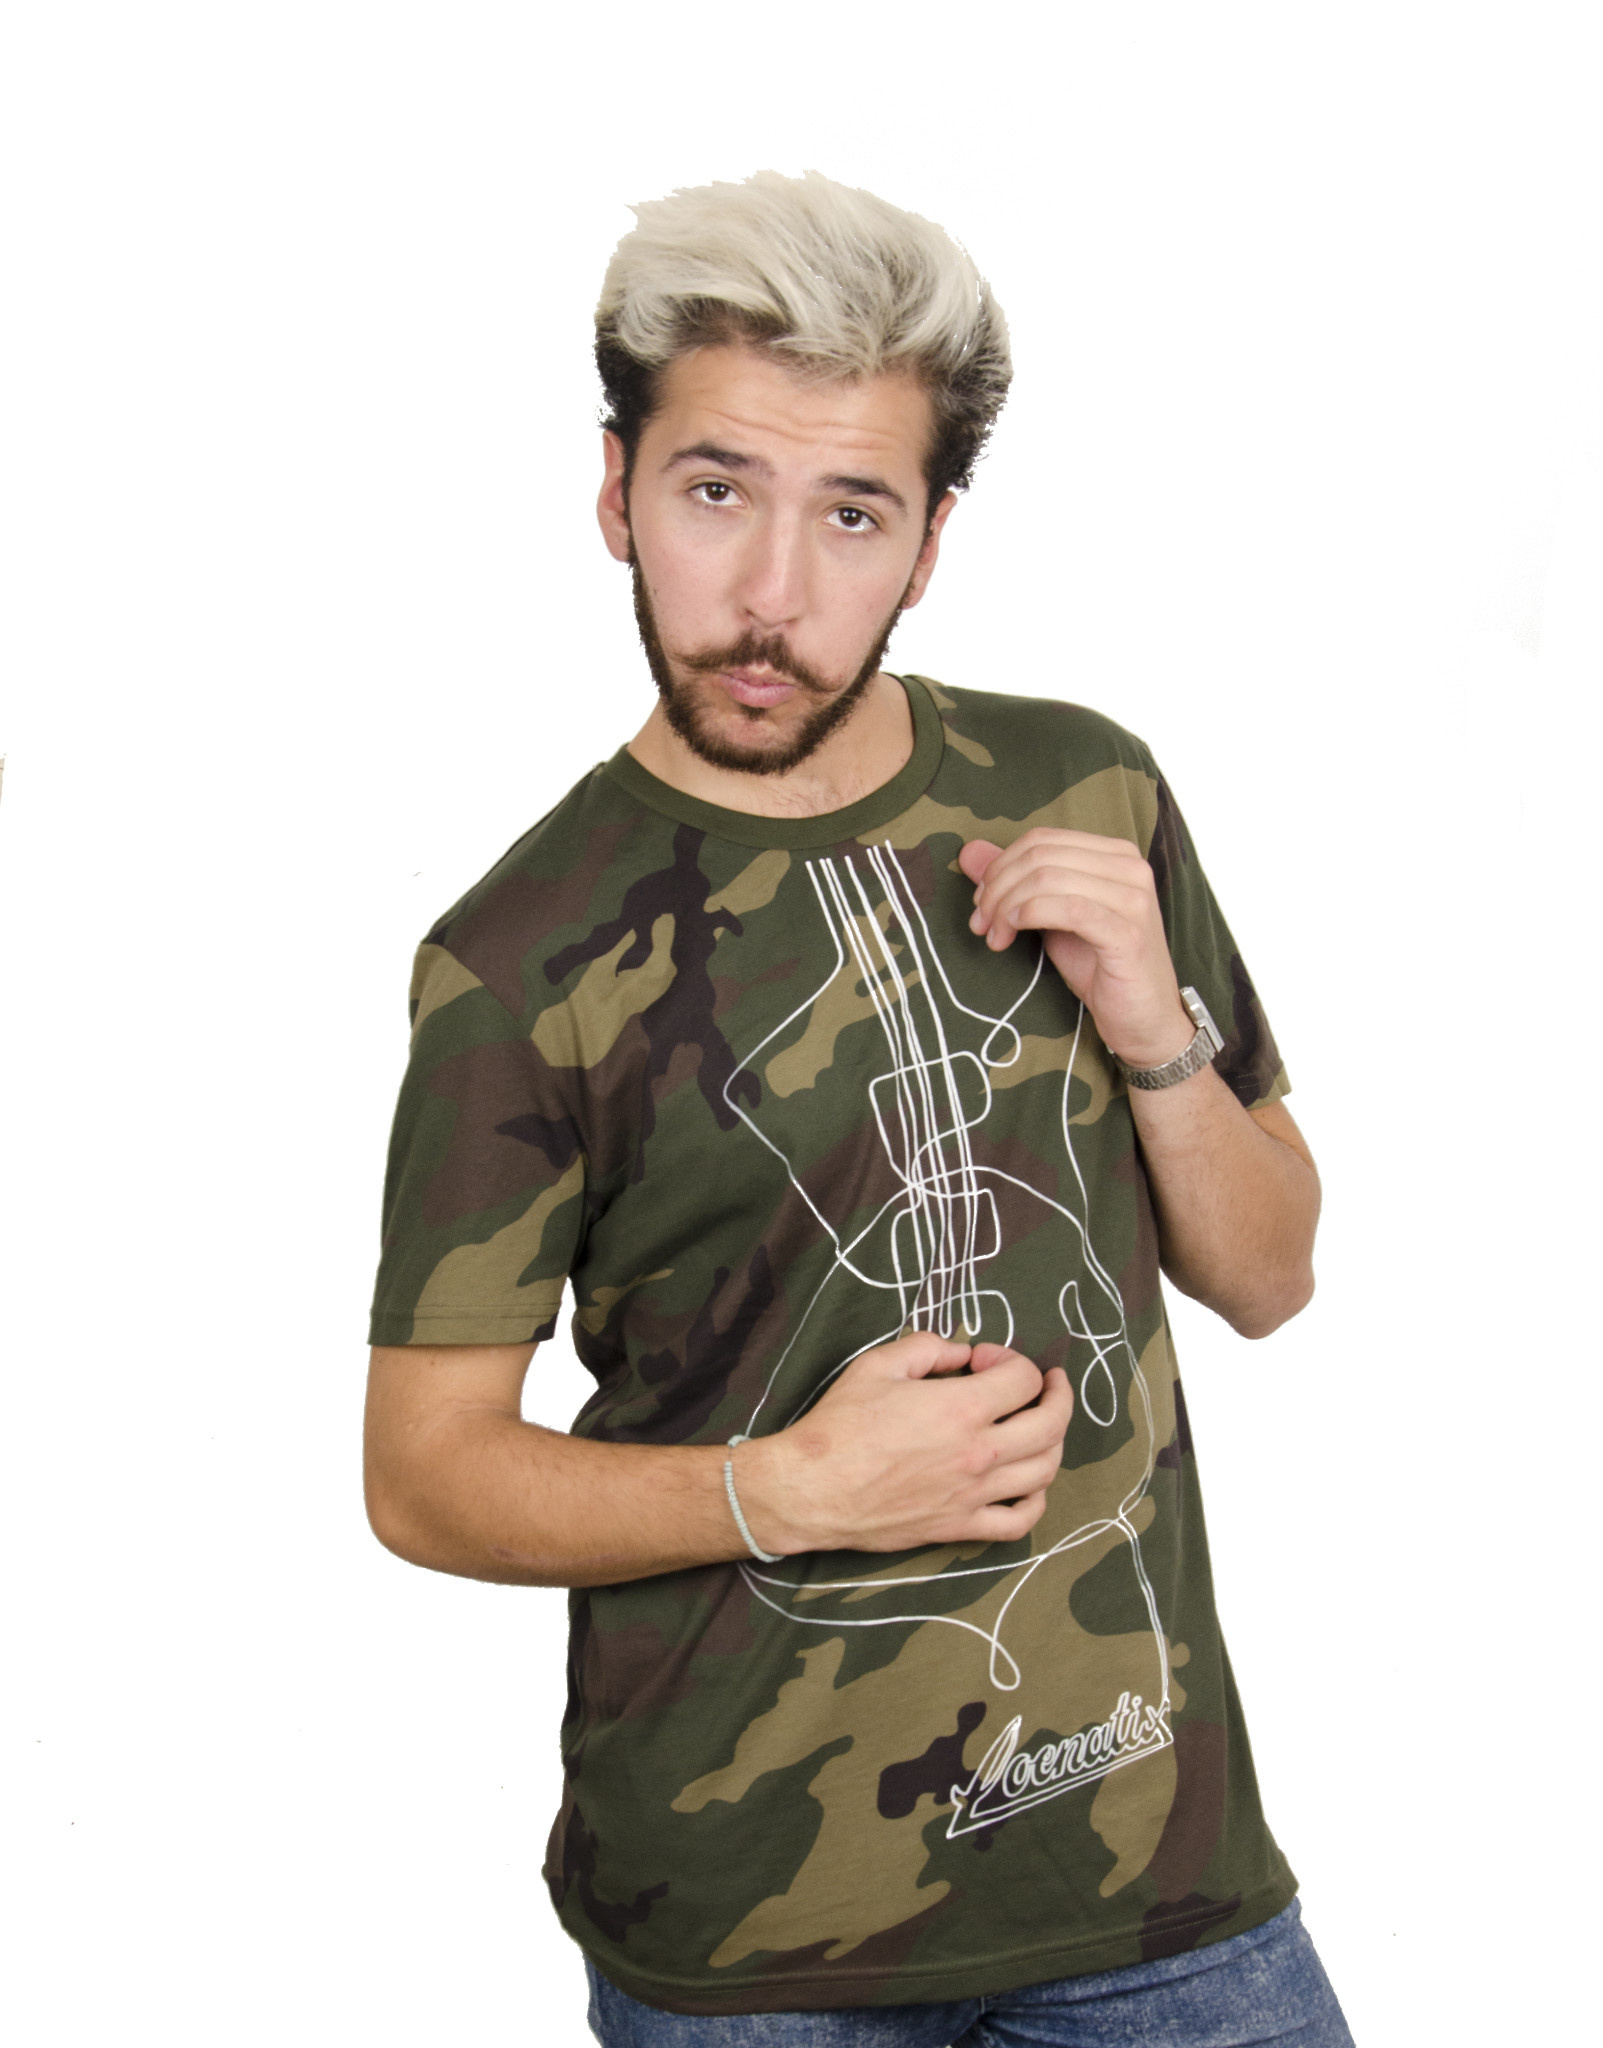 Guitar Camouflage T-shirt